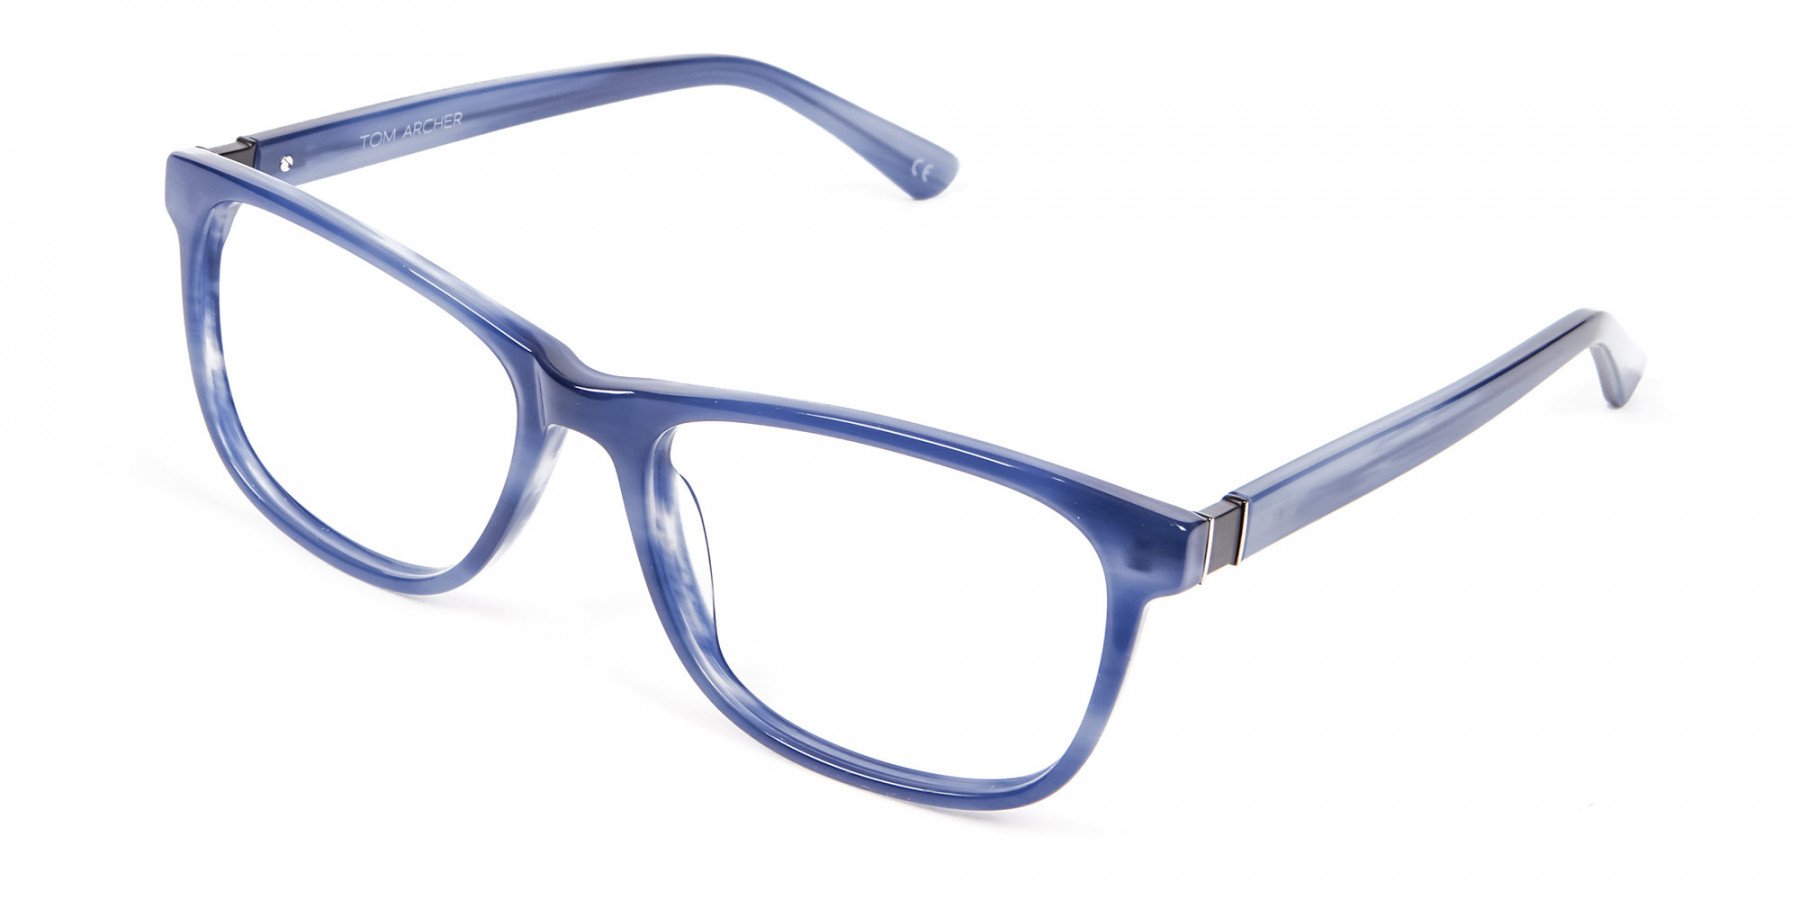 Glossy Blue Frame from In Trend Collection